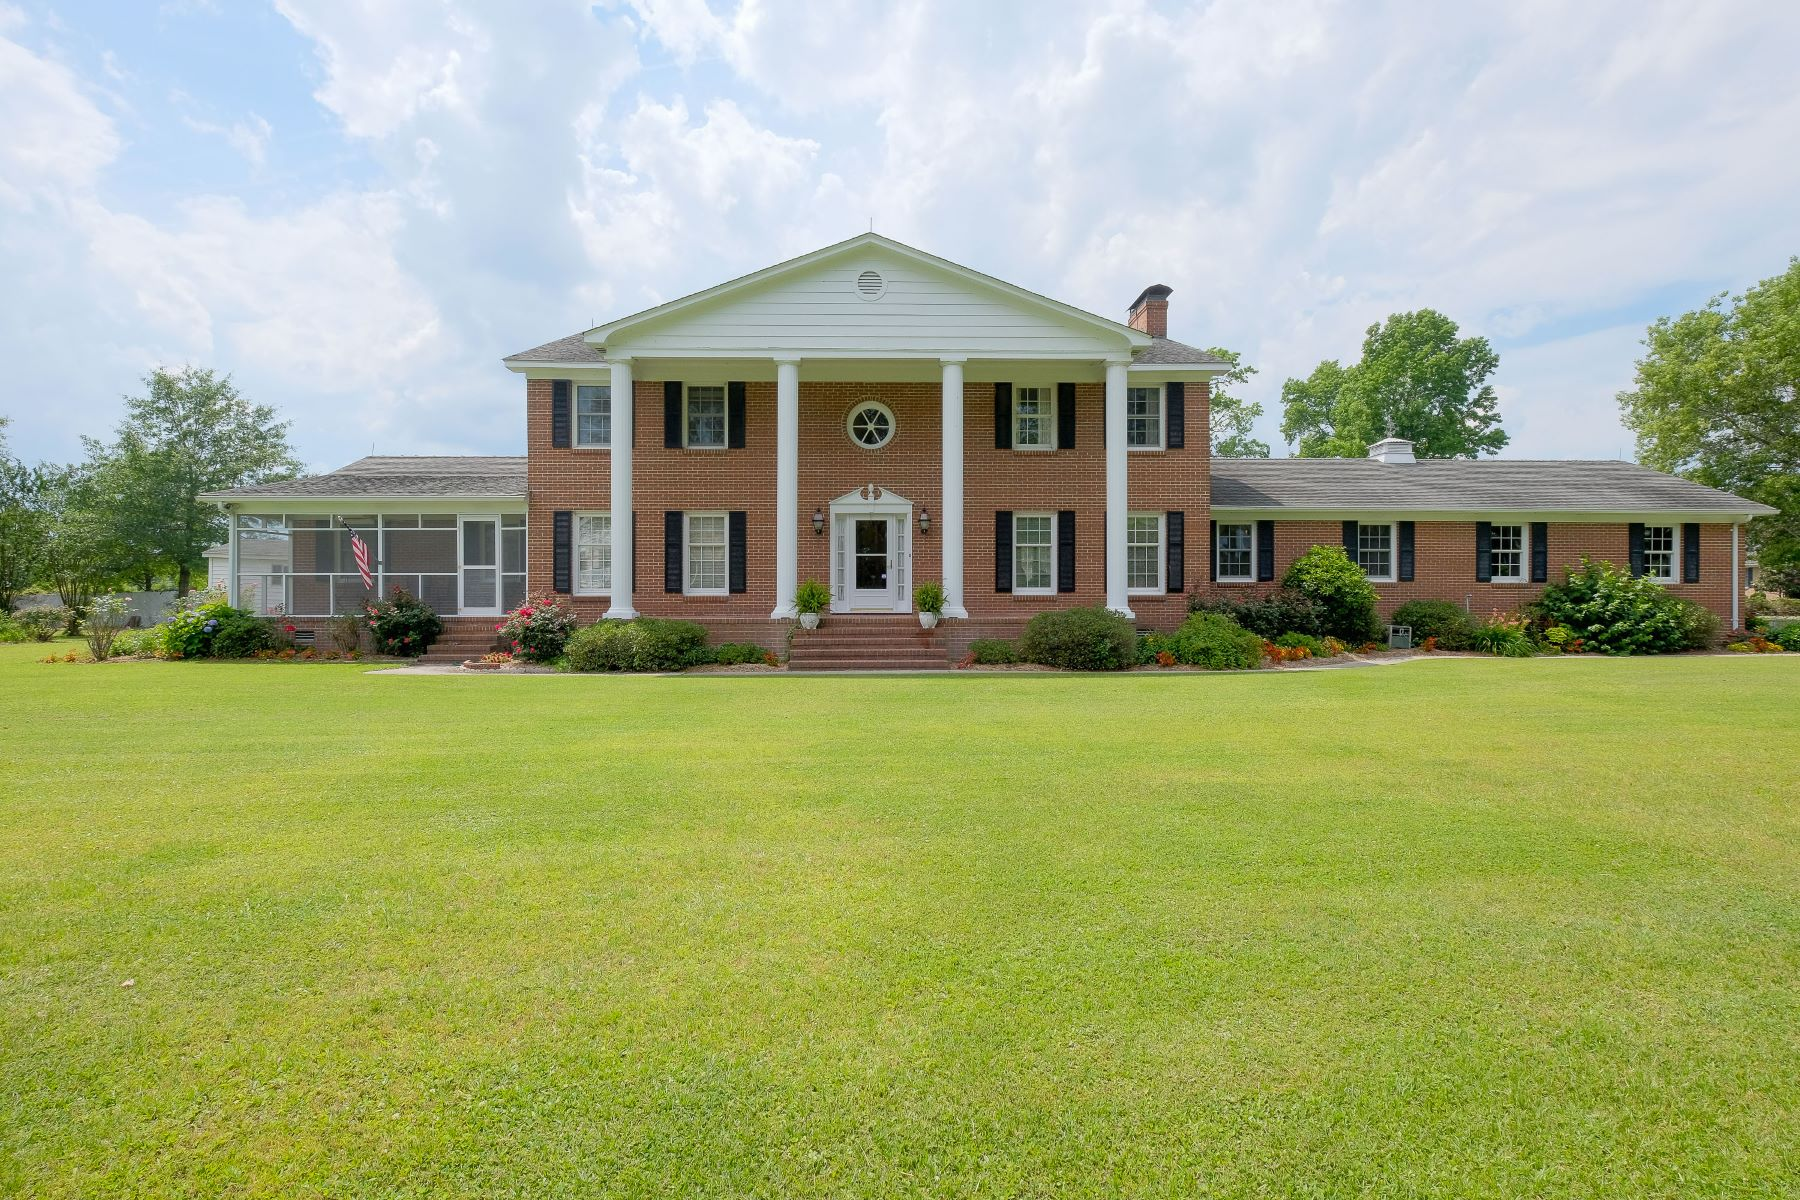 Single Family Home for Sale at IN-TOWN WATERFRONT 301 Queen Anne Dr, Edenton, North Carolina, 27932 United States